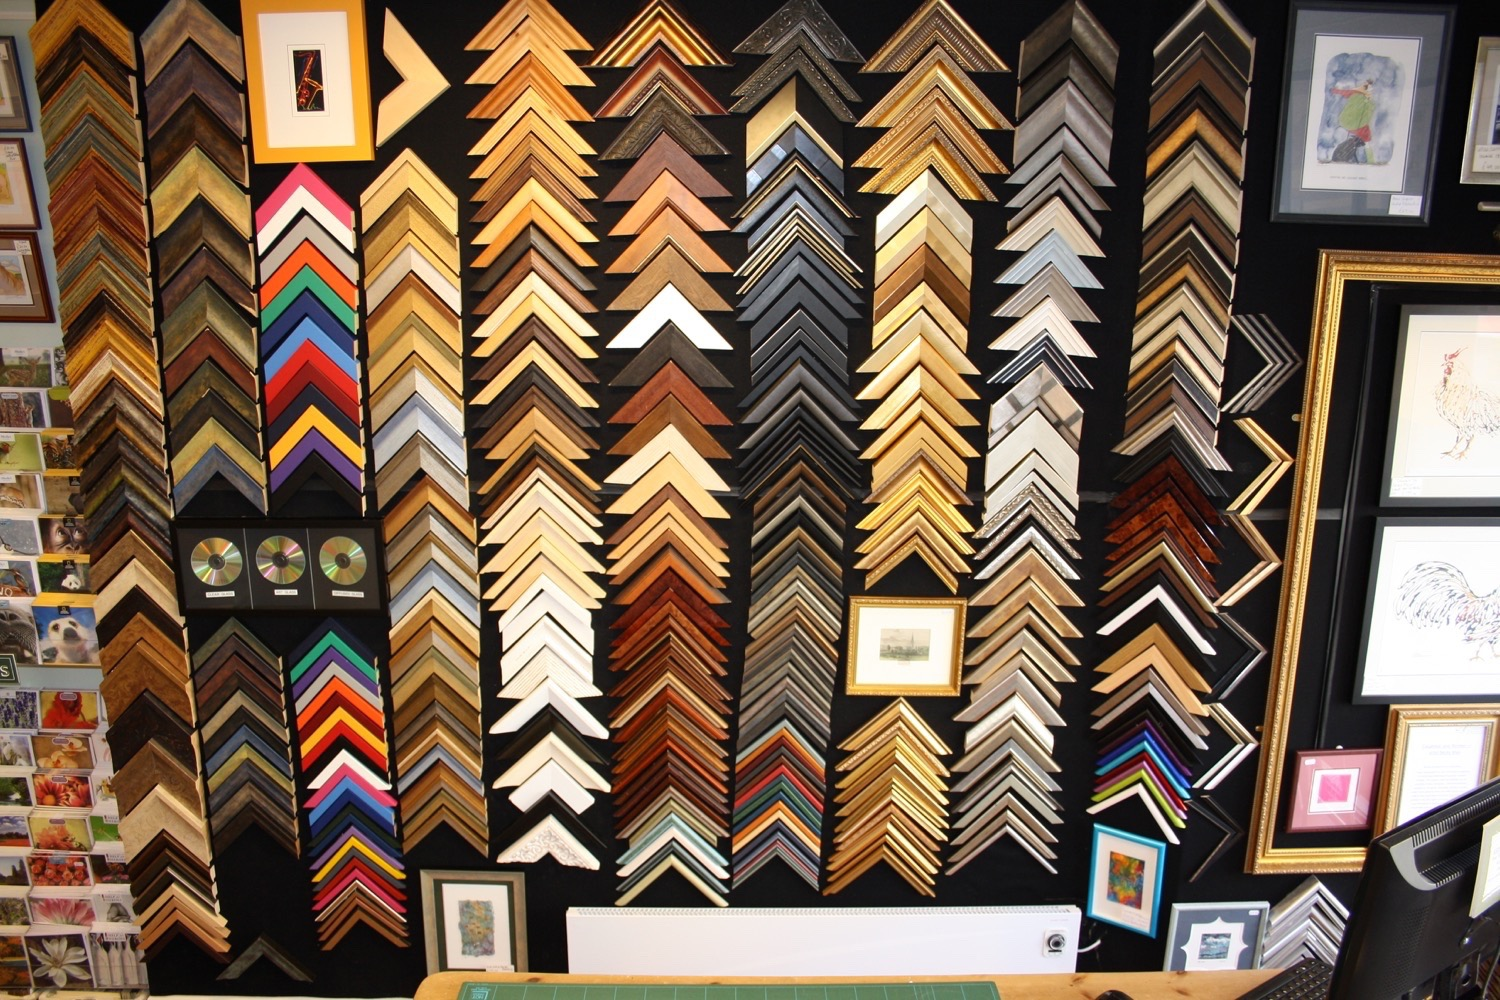 hampshire-picture-general-framing-001.JPG